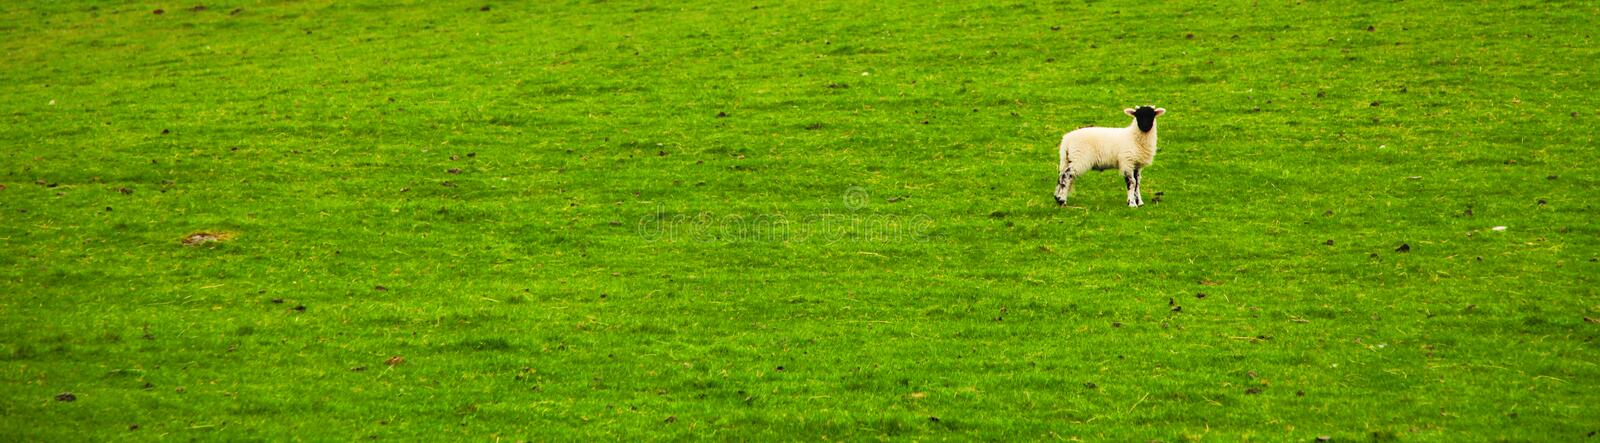 One Lonely Sheep in Grass royalty free stock photo